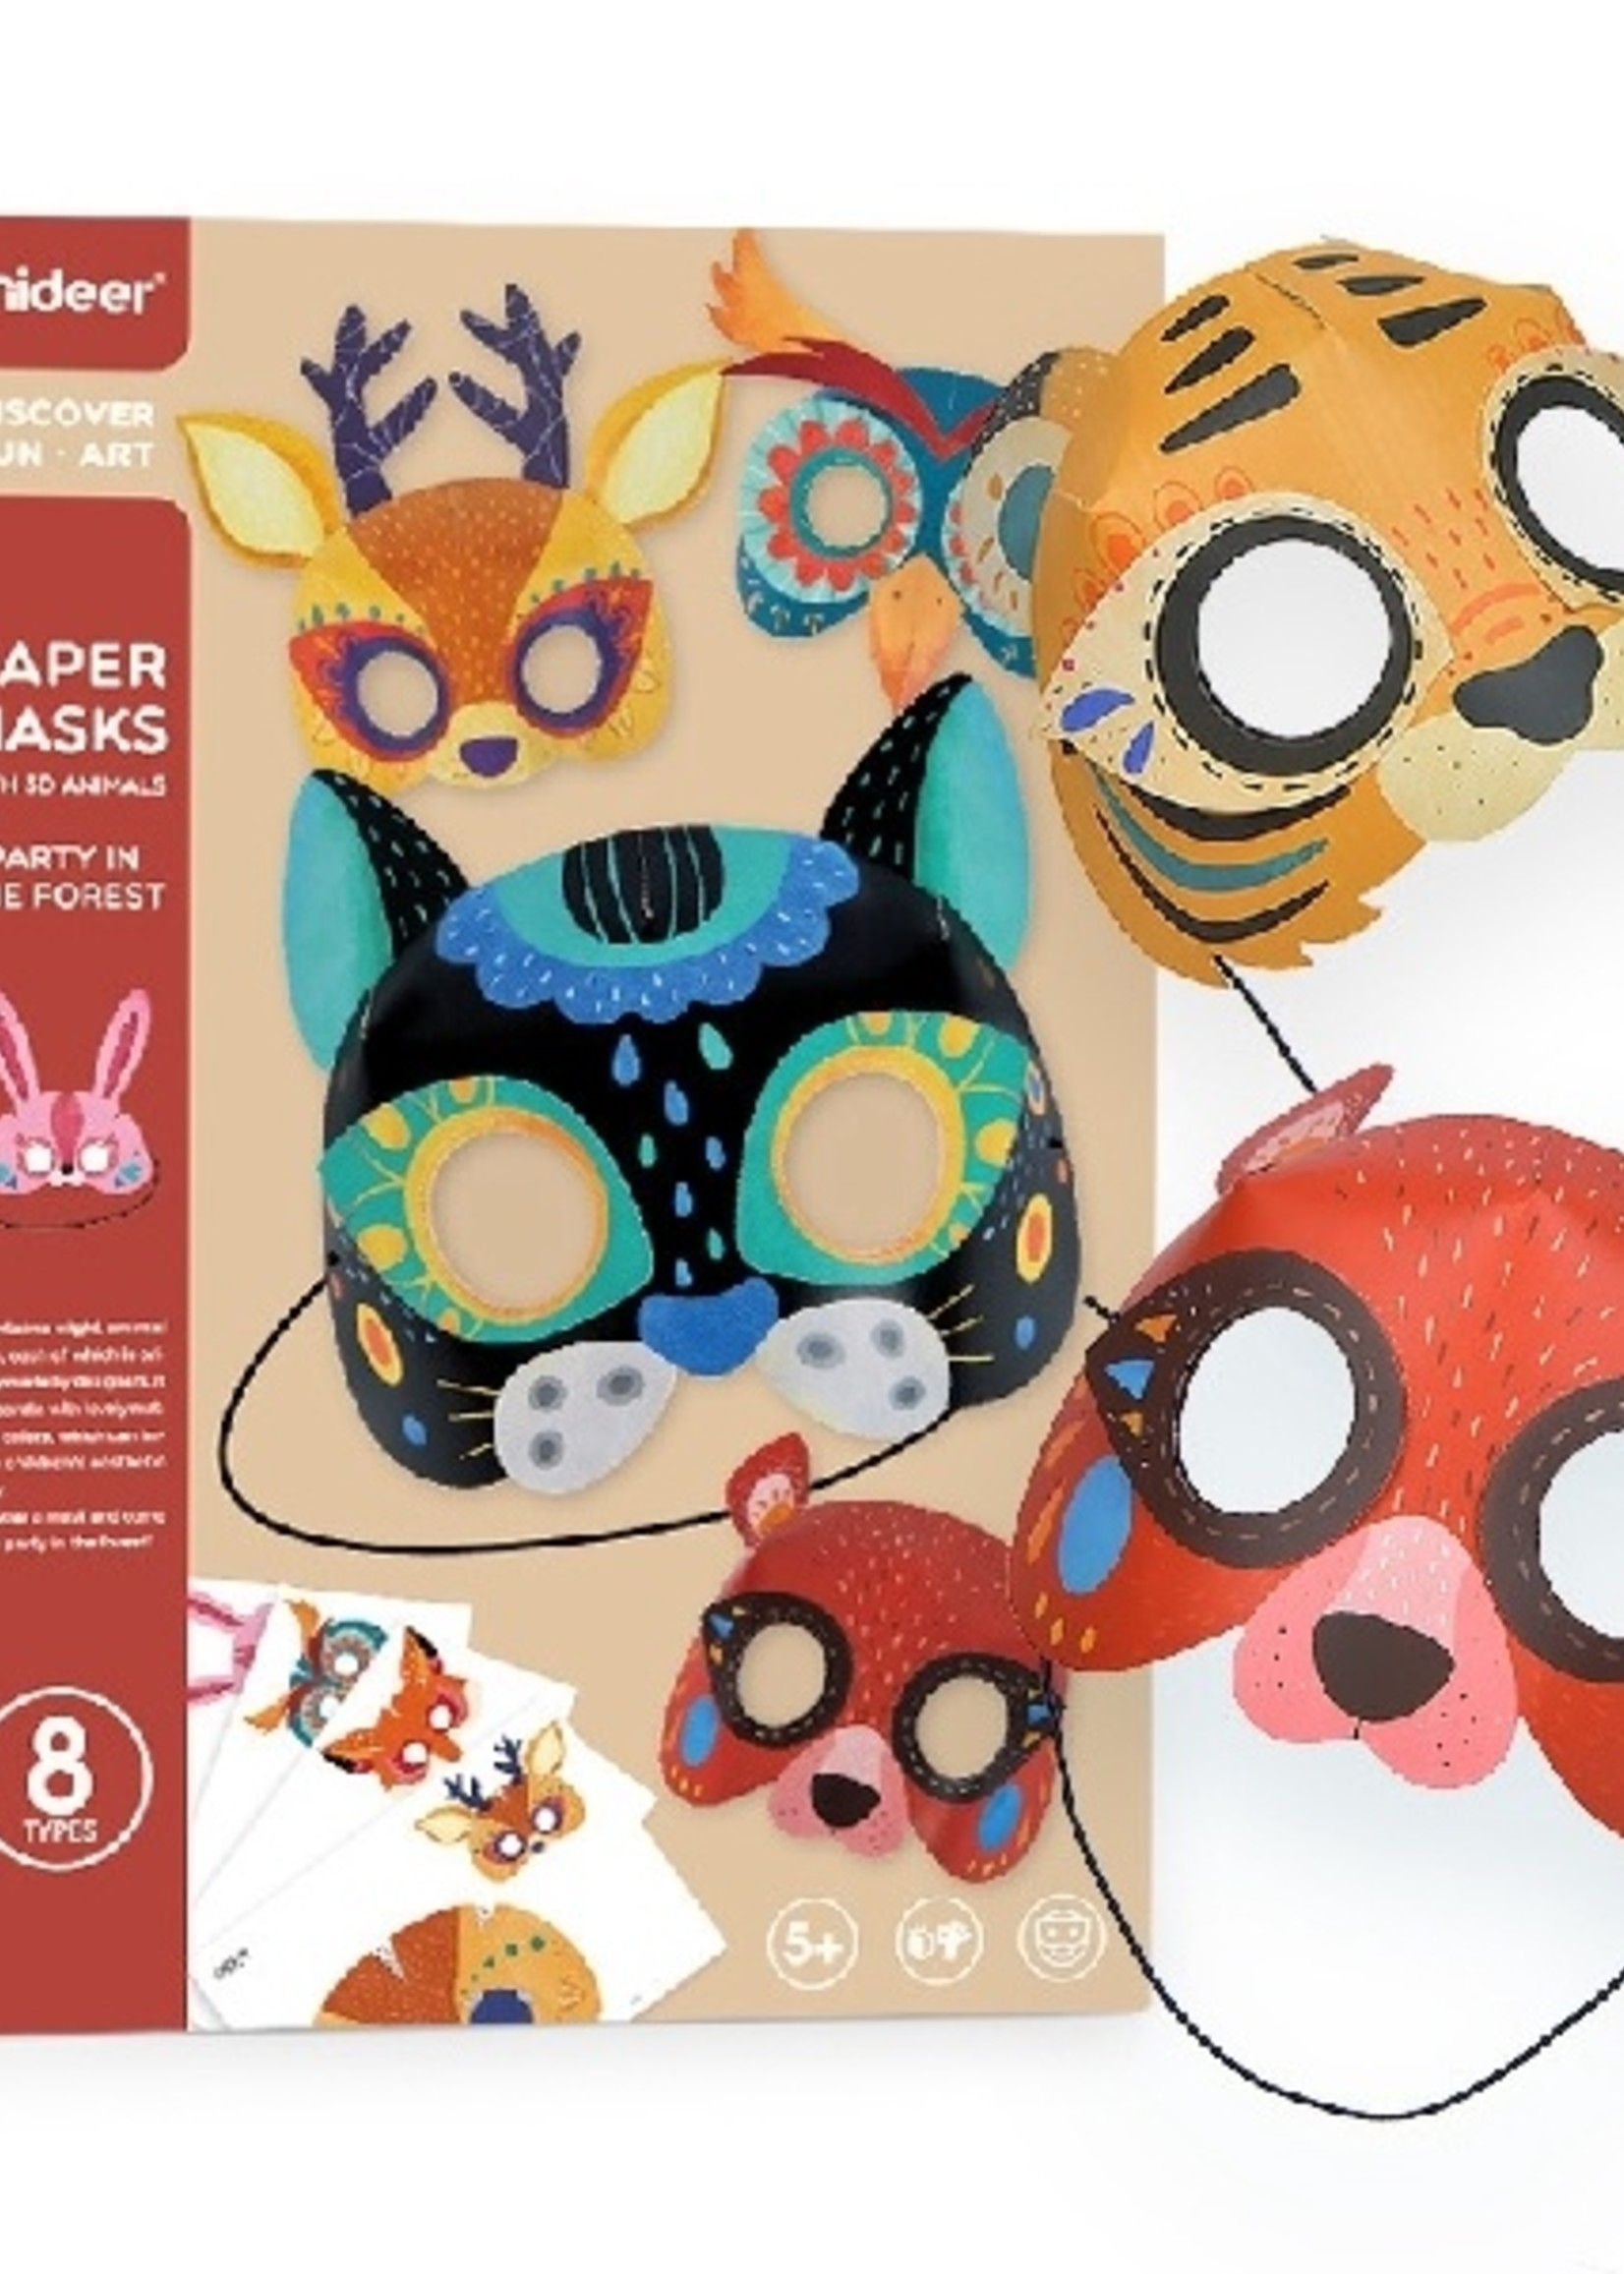 Mideer Mideer-AW20 MD4118 Paper Masks Party in The Forest